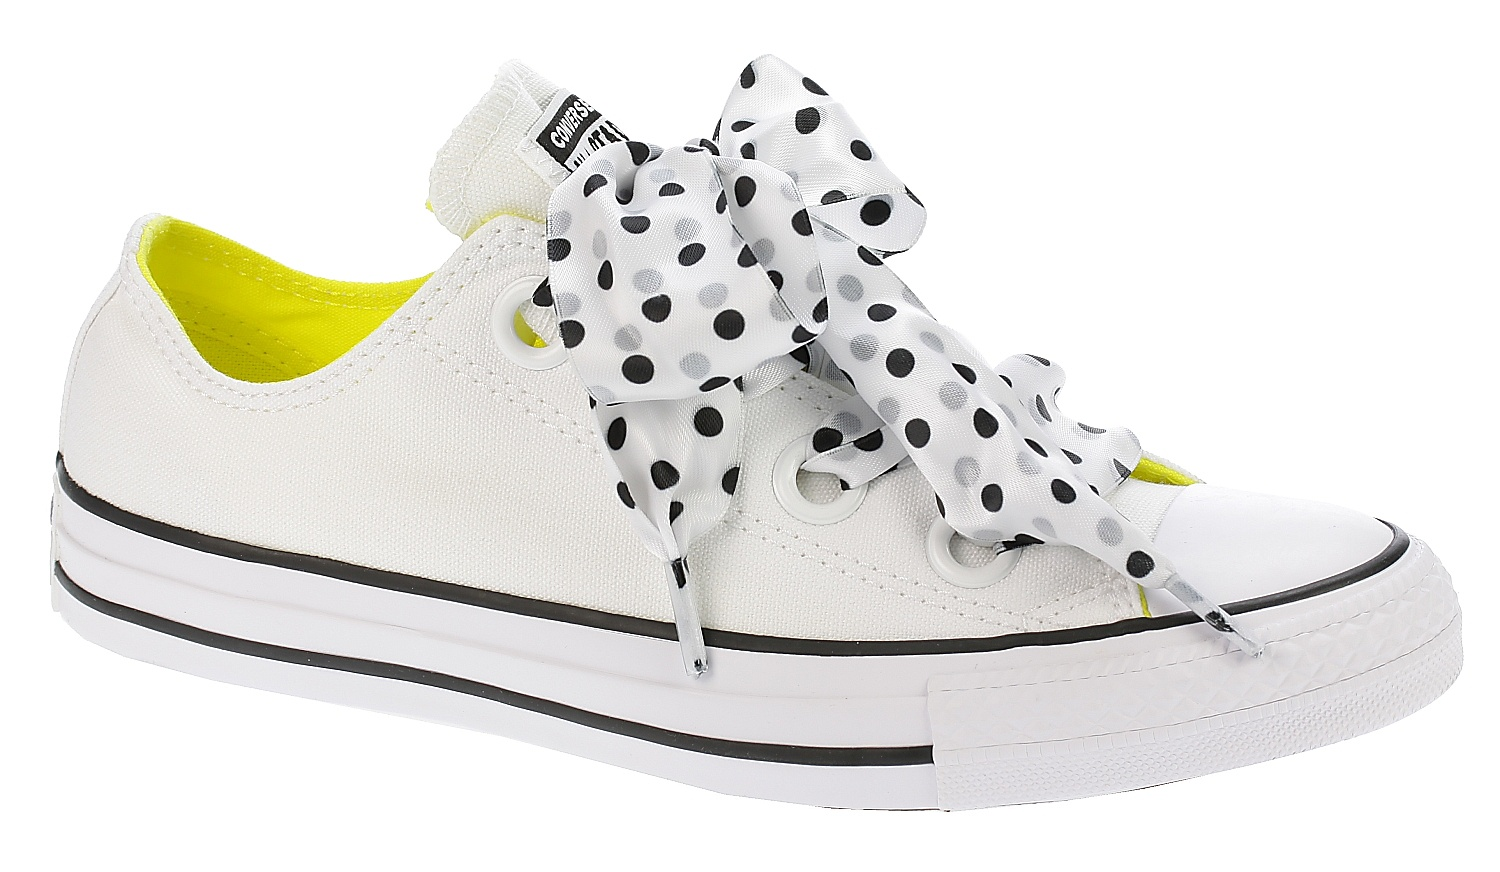 269e137fc08891 boty Converse Chuck Taylor All Star Big Eyelets OX - 560670 White Fresh  Yellow Black - Snowboard shop